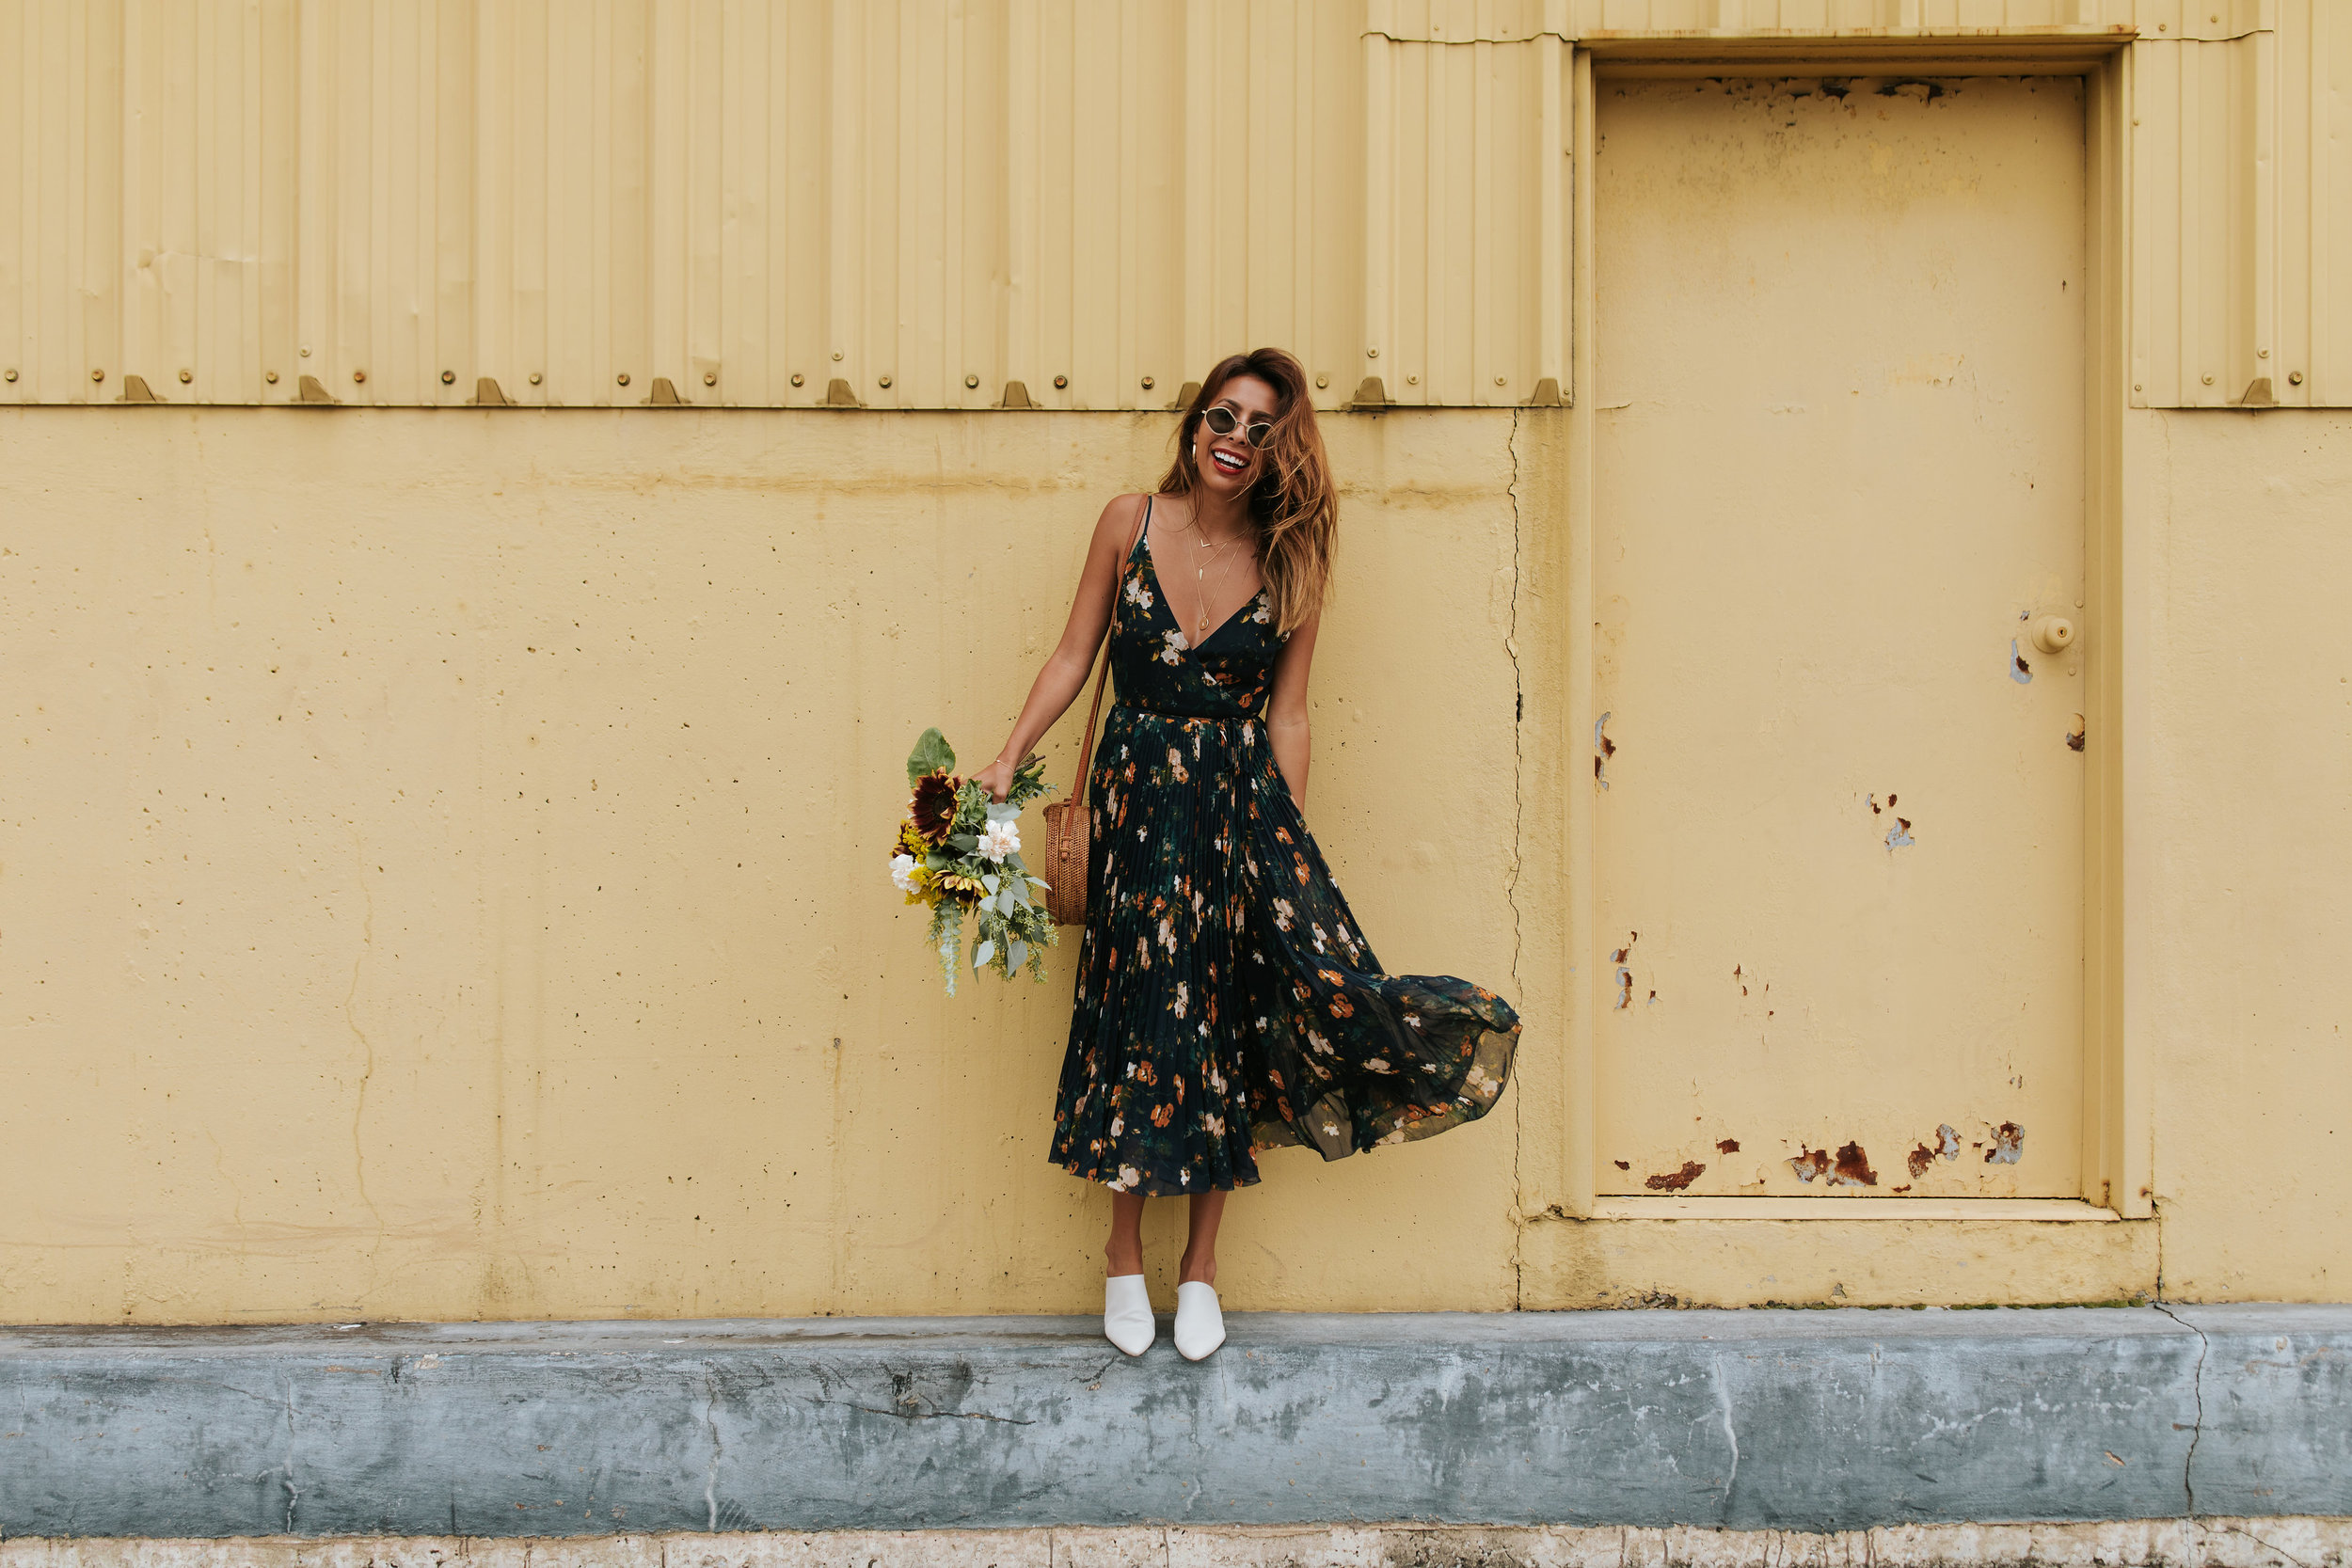 How to transition a floral dress to fall - Ashley from Everyday Pursuits